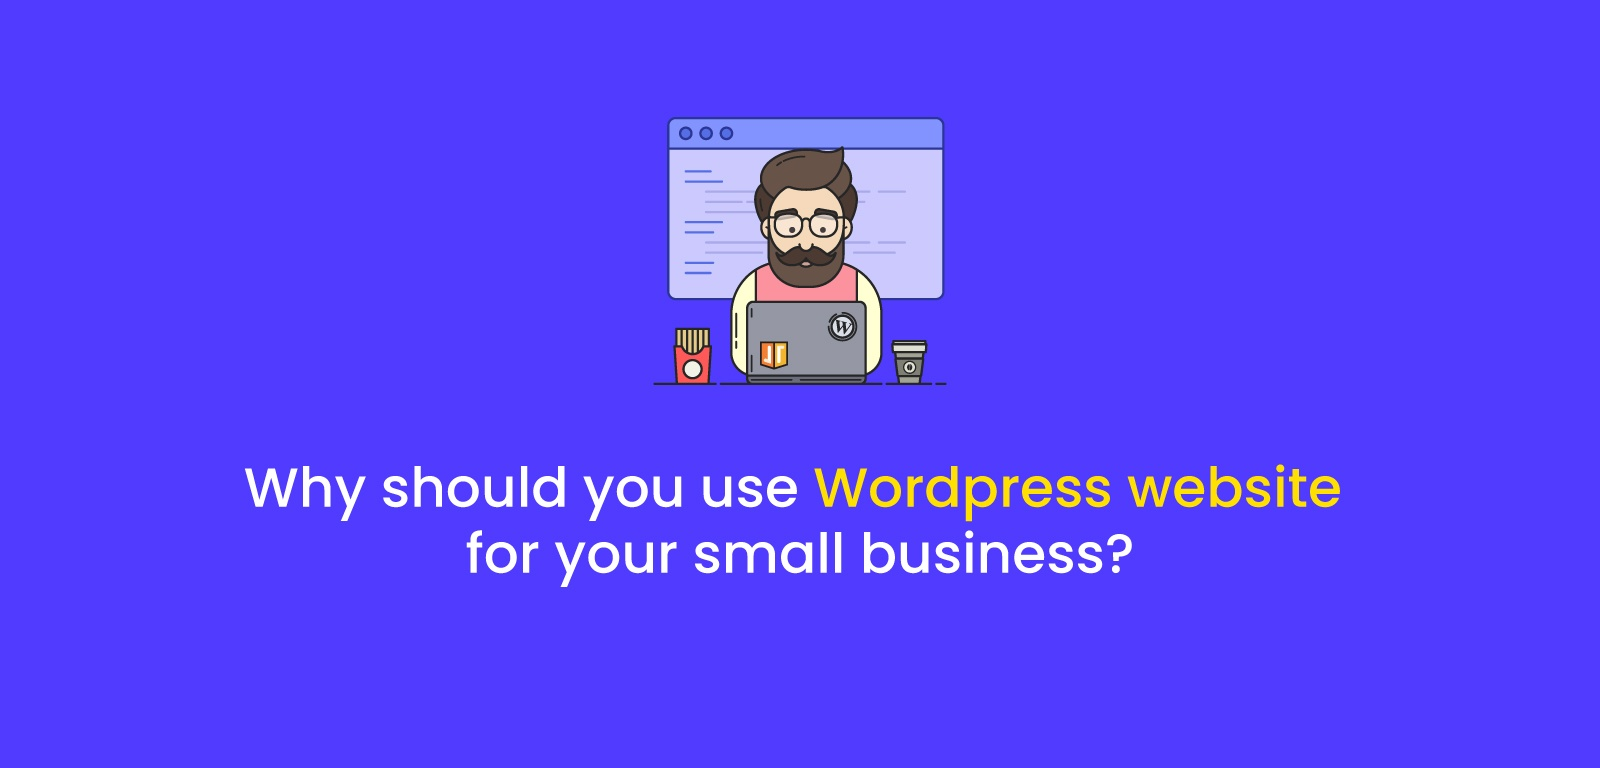 Why should you use Wordpress website for your small business?